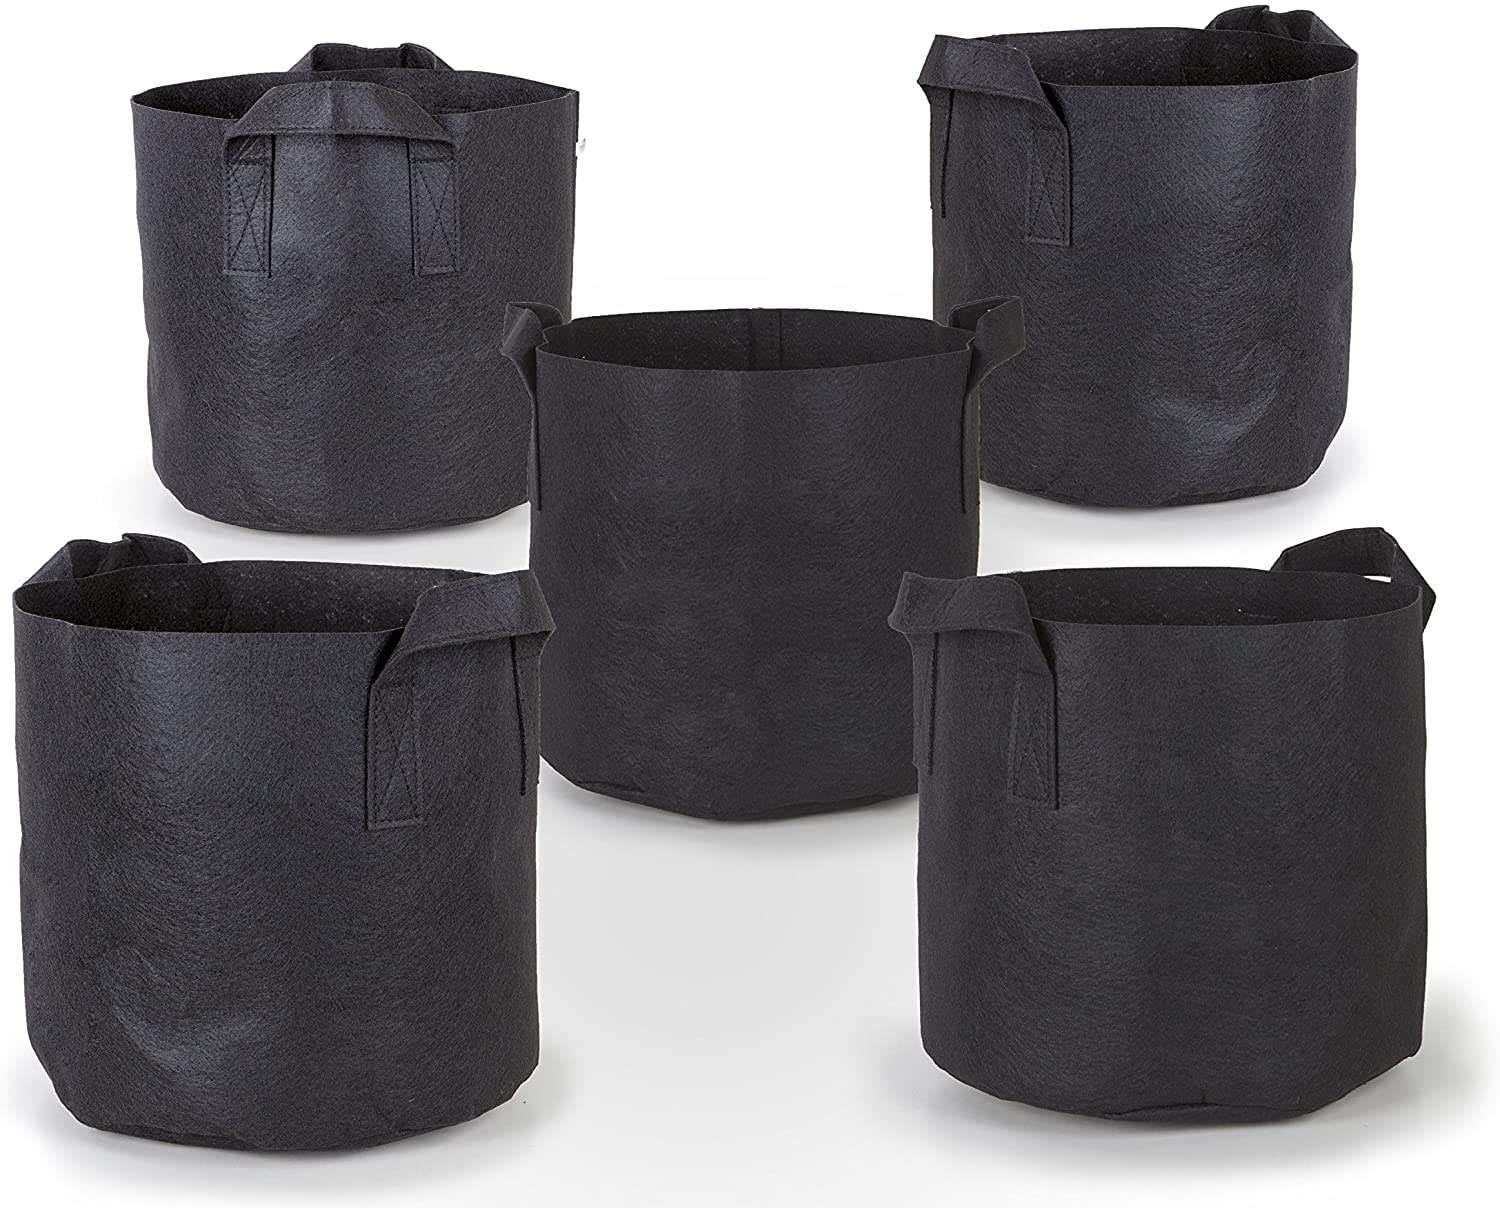 Plant Grow Bags 3 Gallon 5 Gallon 10 Gallon 15 Gallon 30 Gallon 100 Gallon Aeration Fabric Pots Garden Potato Felt Grow Bag